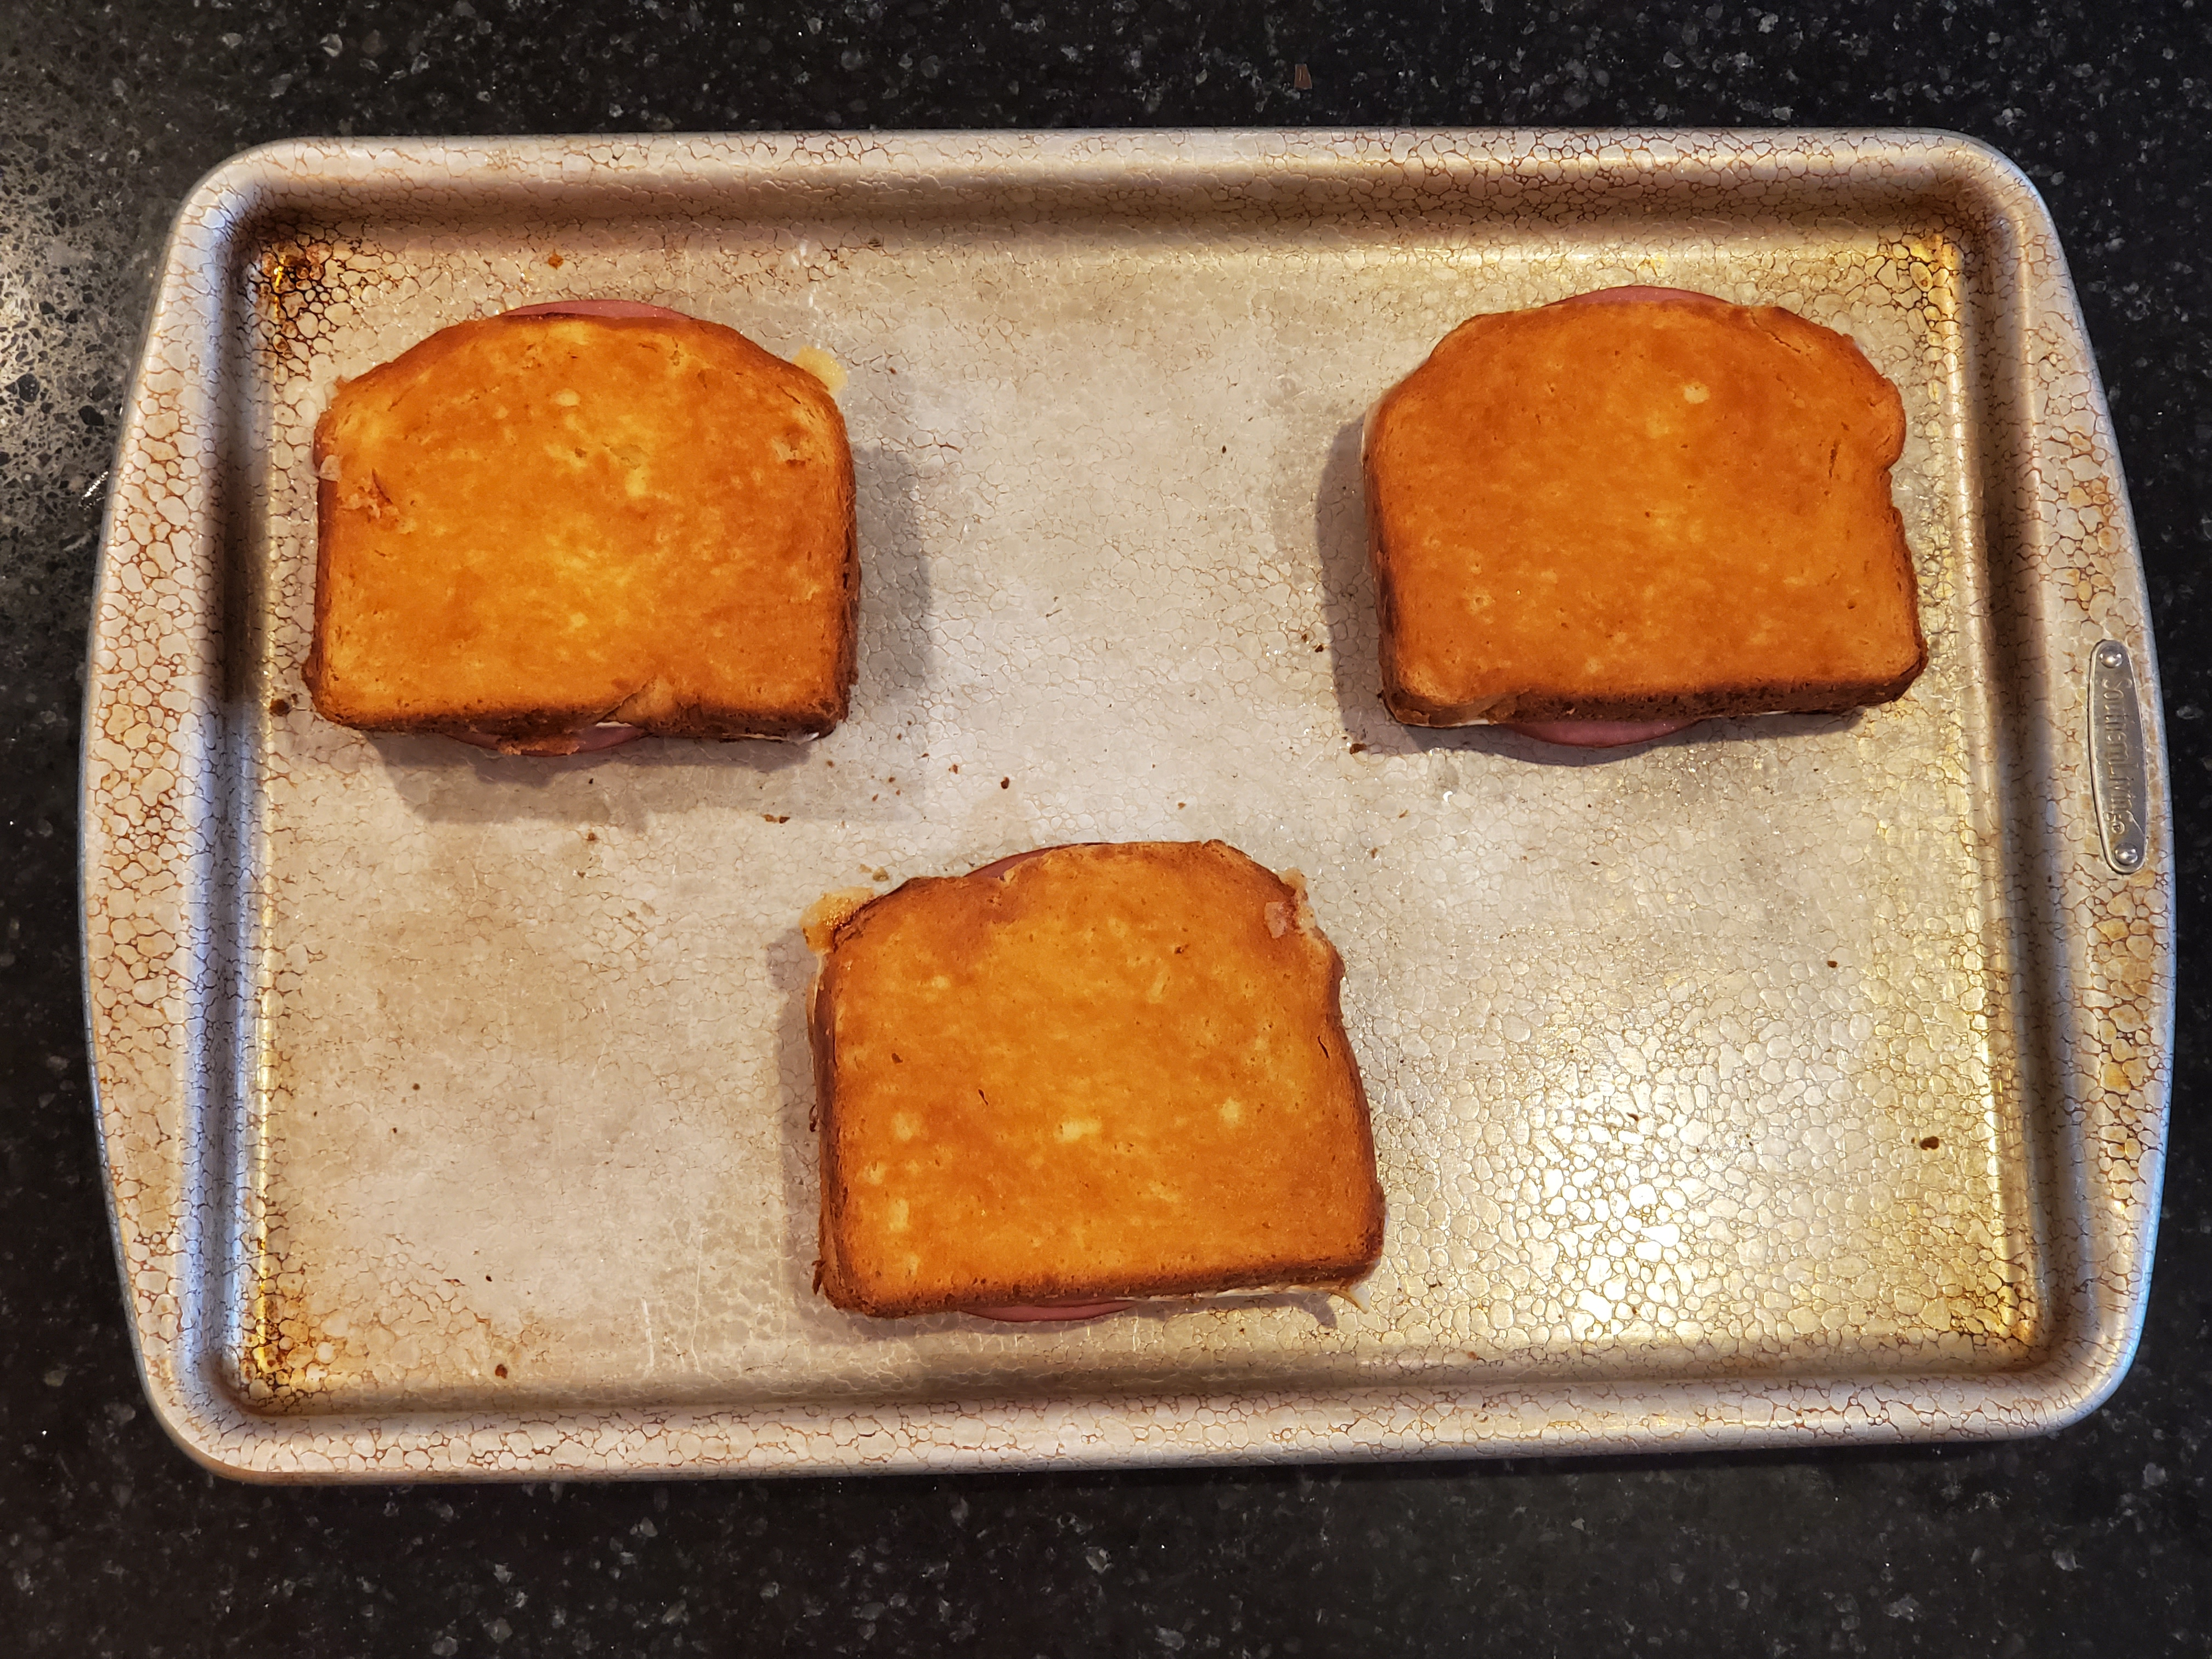 The three sandwiches have come out of the oven, golden brown and sit on the baking sheet.